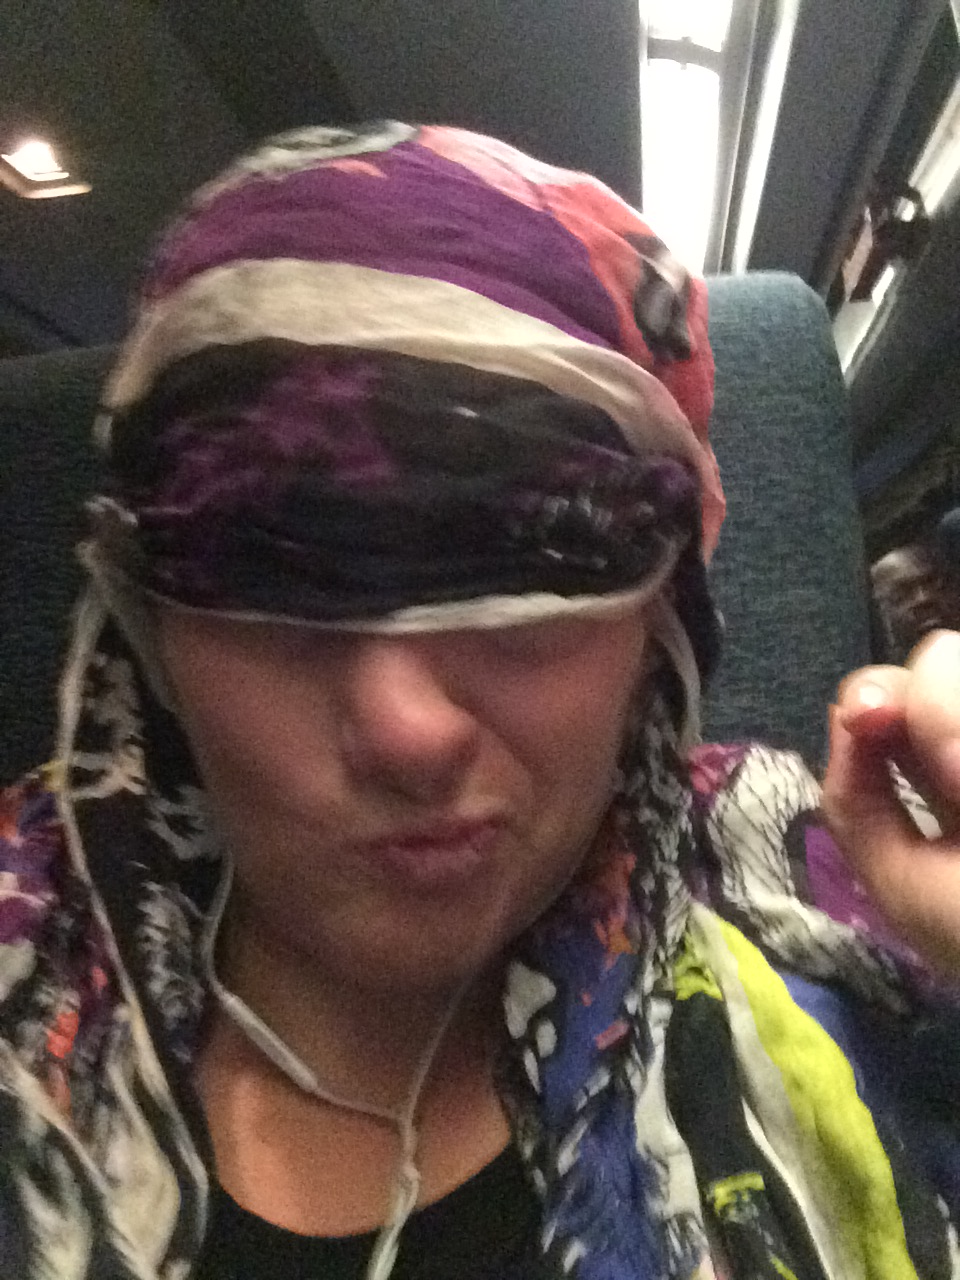 My makeshift eye mask on the train. I am a very cute traveler.